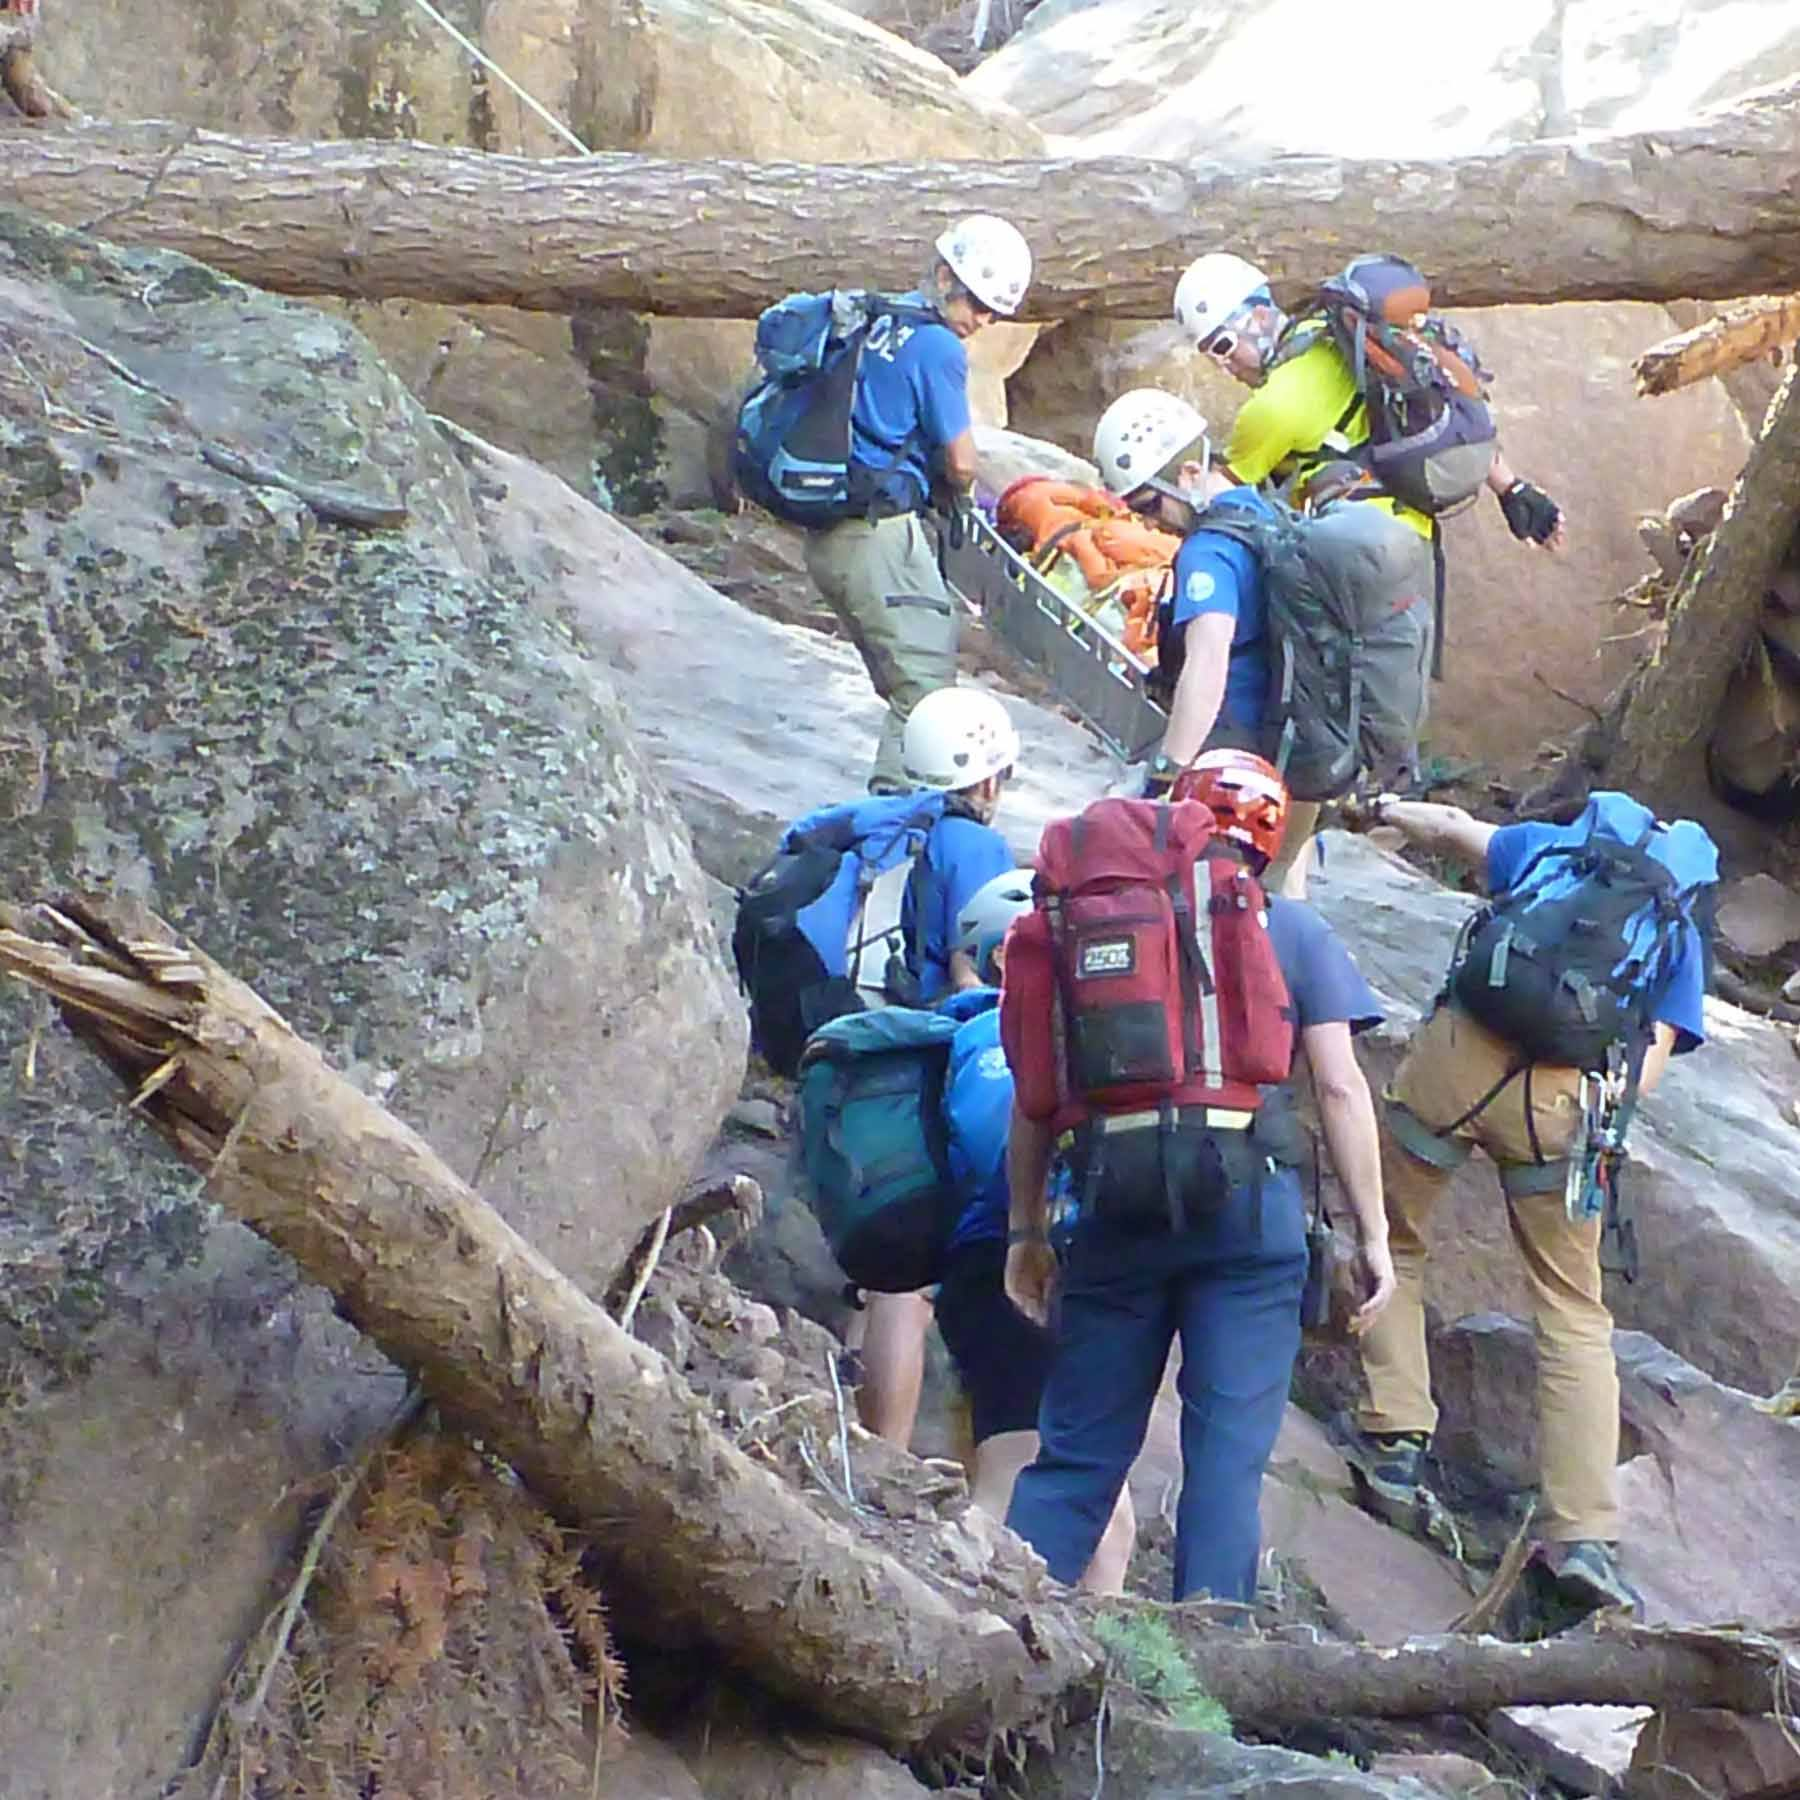 RMRG members conduct a litter evacuation down rugged, flood eroded terrain below the east face of Boulder's 2nd Flatiron.